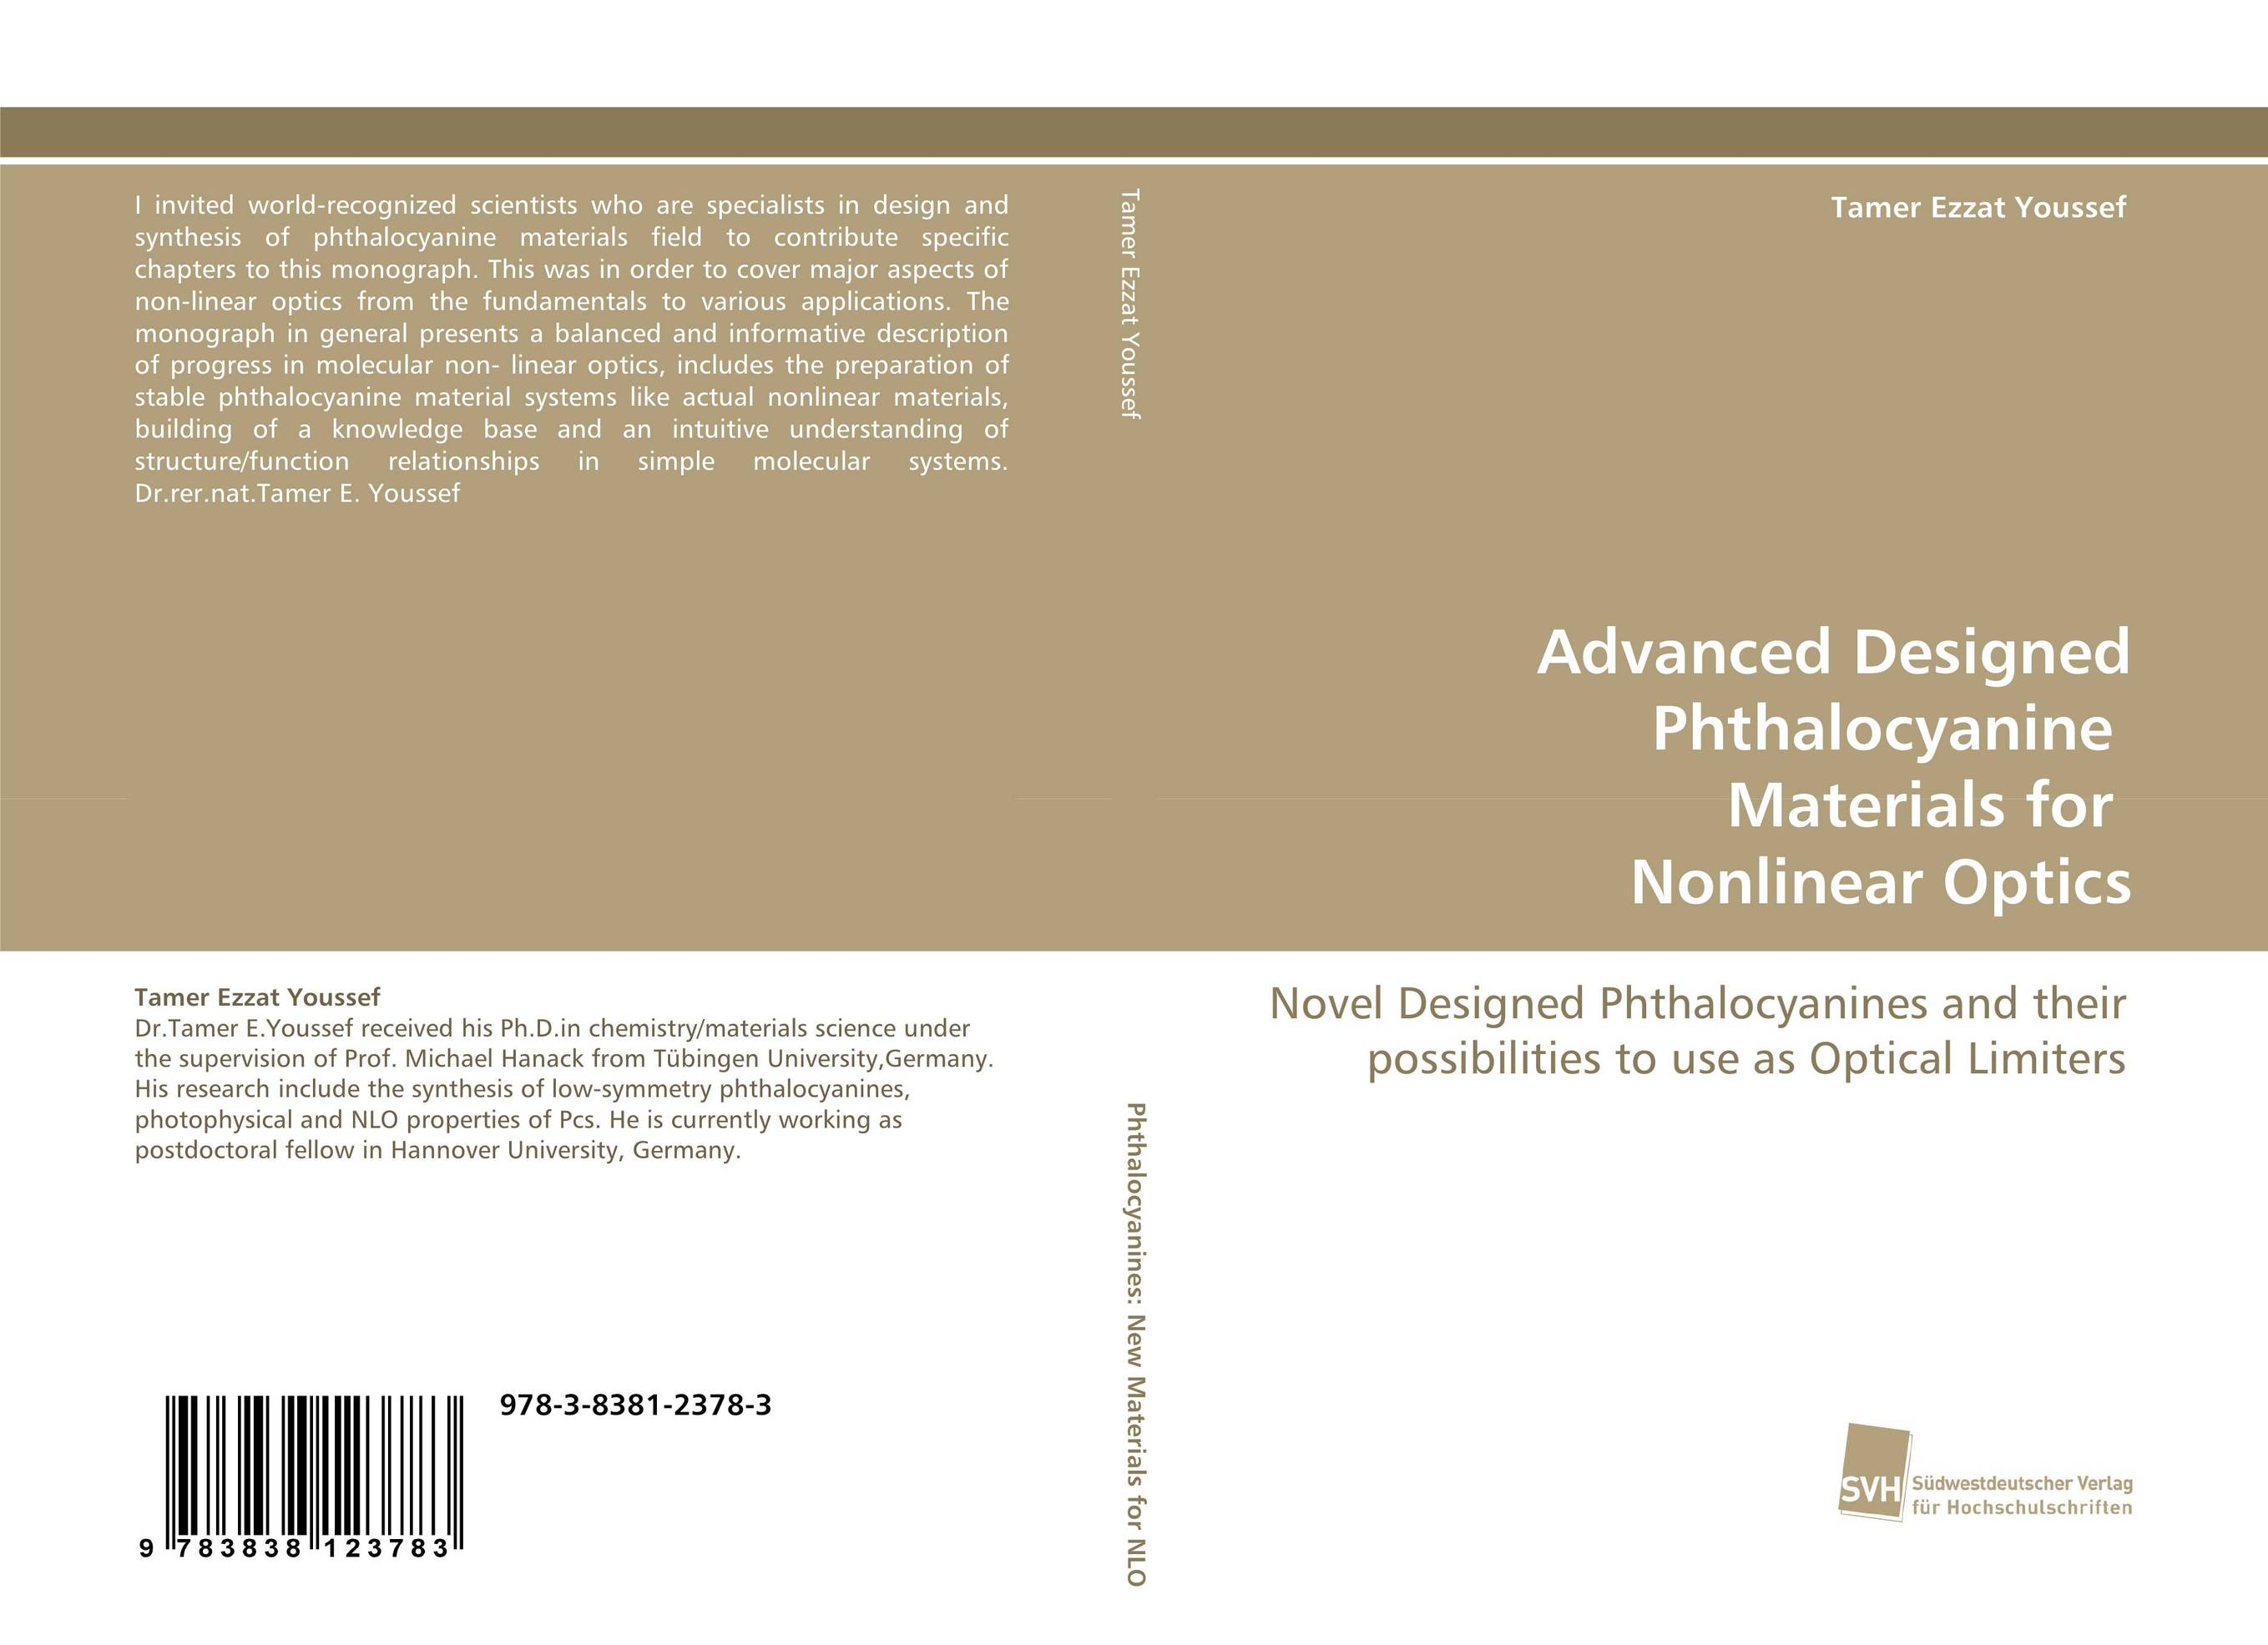 Advanced Designed Phthalocyanine Materials for Nonlinear Optics dennis hall g boronic acids preparation and applications in organic synthesis medicine and materials